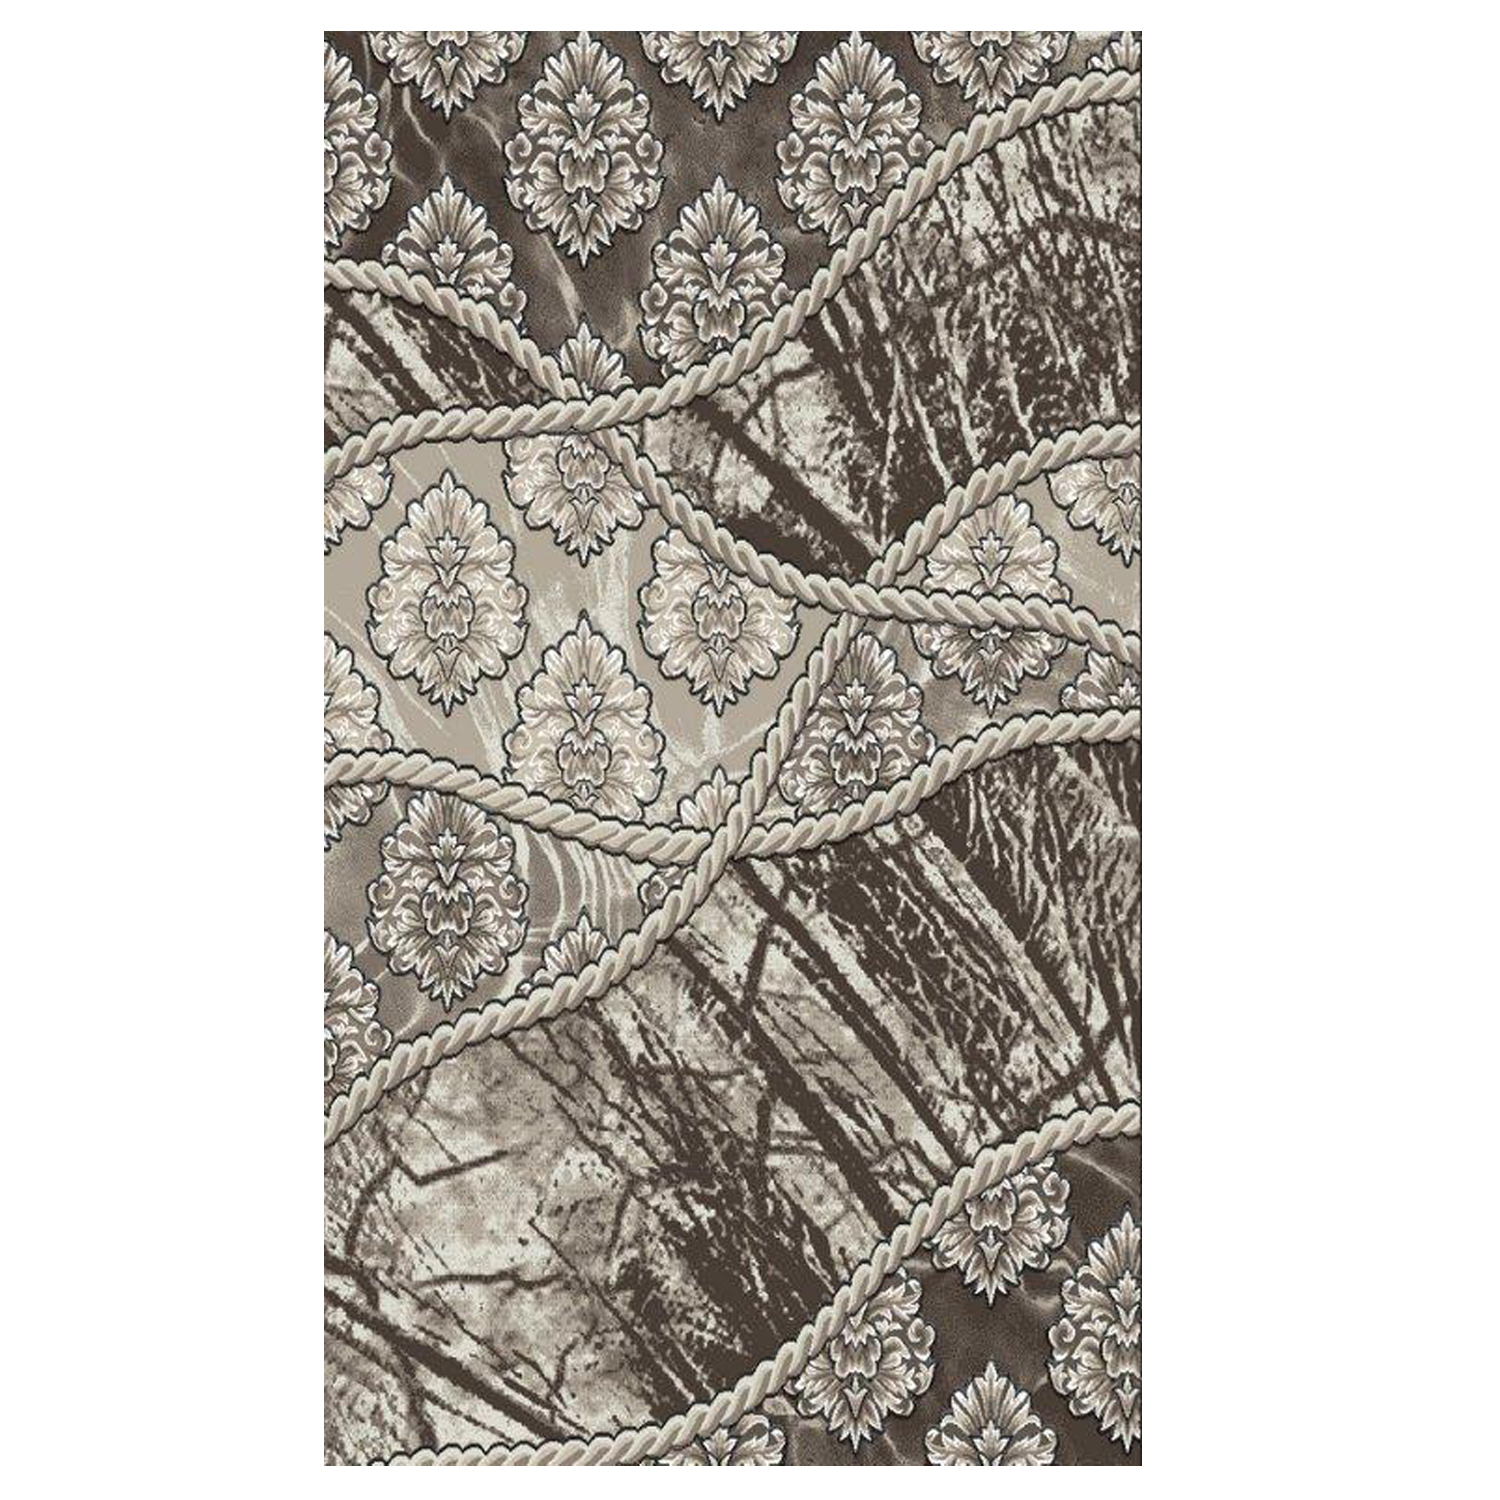 Jewel Brown 8' x 10' Area Rug, BROWN